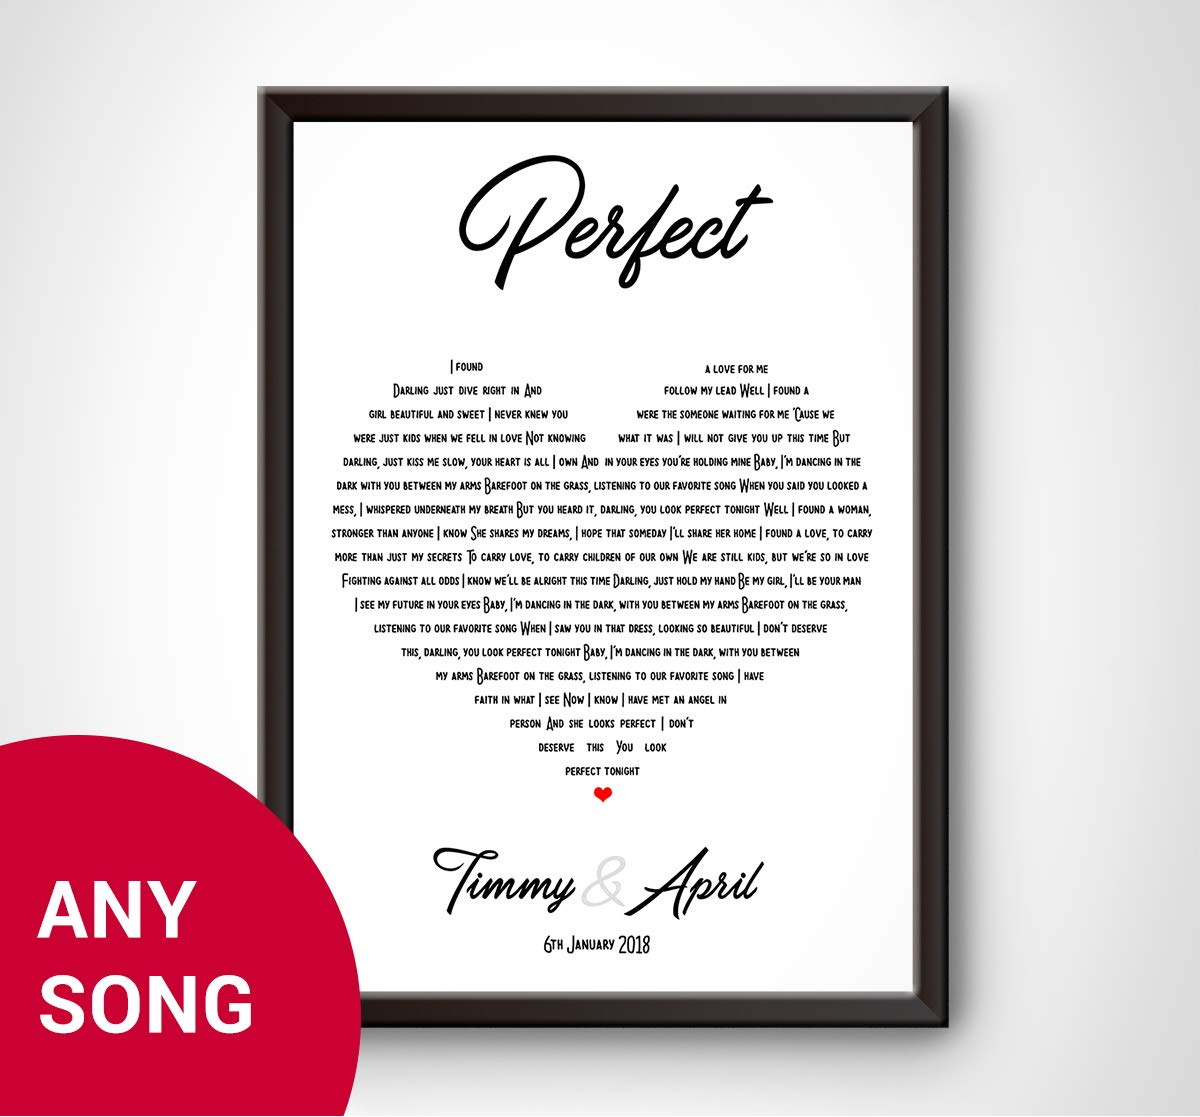 d389552038a Personalised Song Lyrics Wall Art Print - ED SHEERAN - PERFECT - The  perfect gift idea for wedding, first dance, love song, anniversary,  engagement, ...